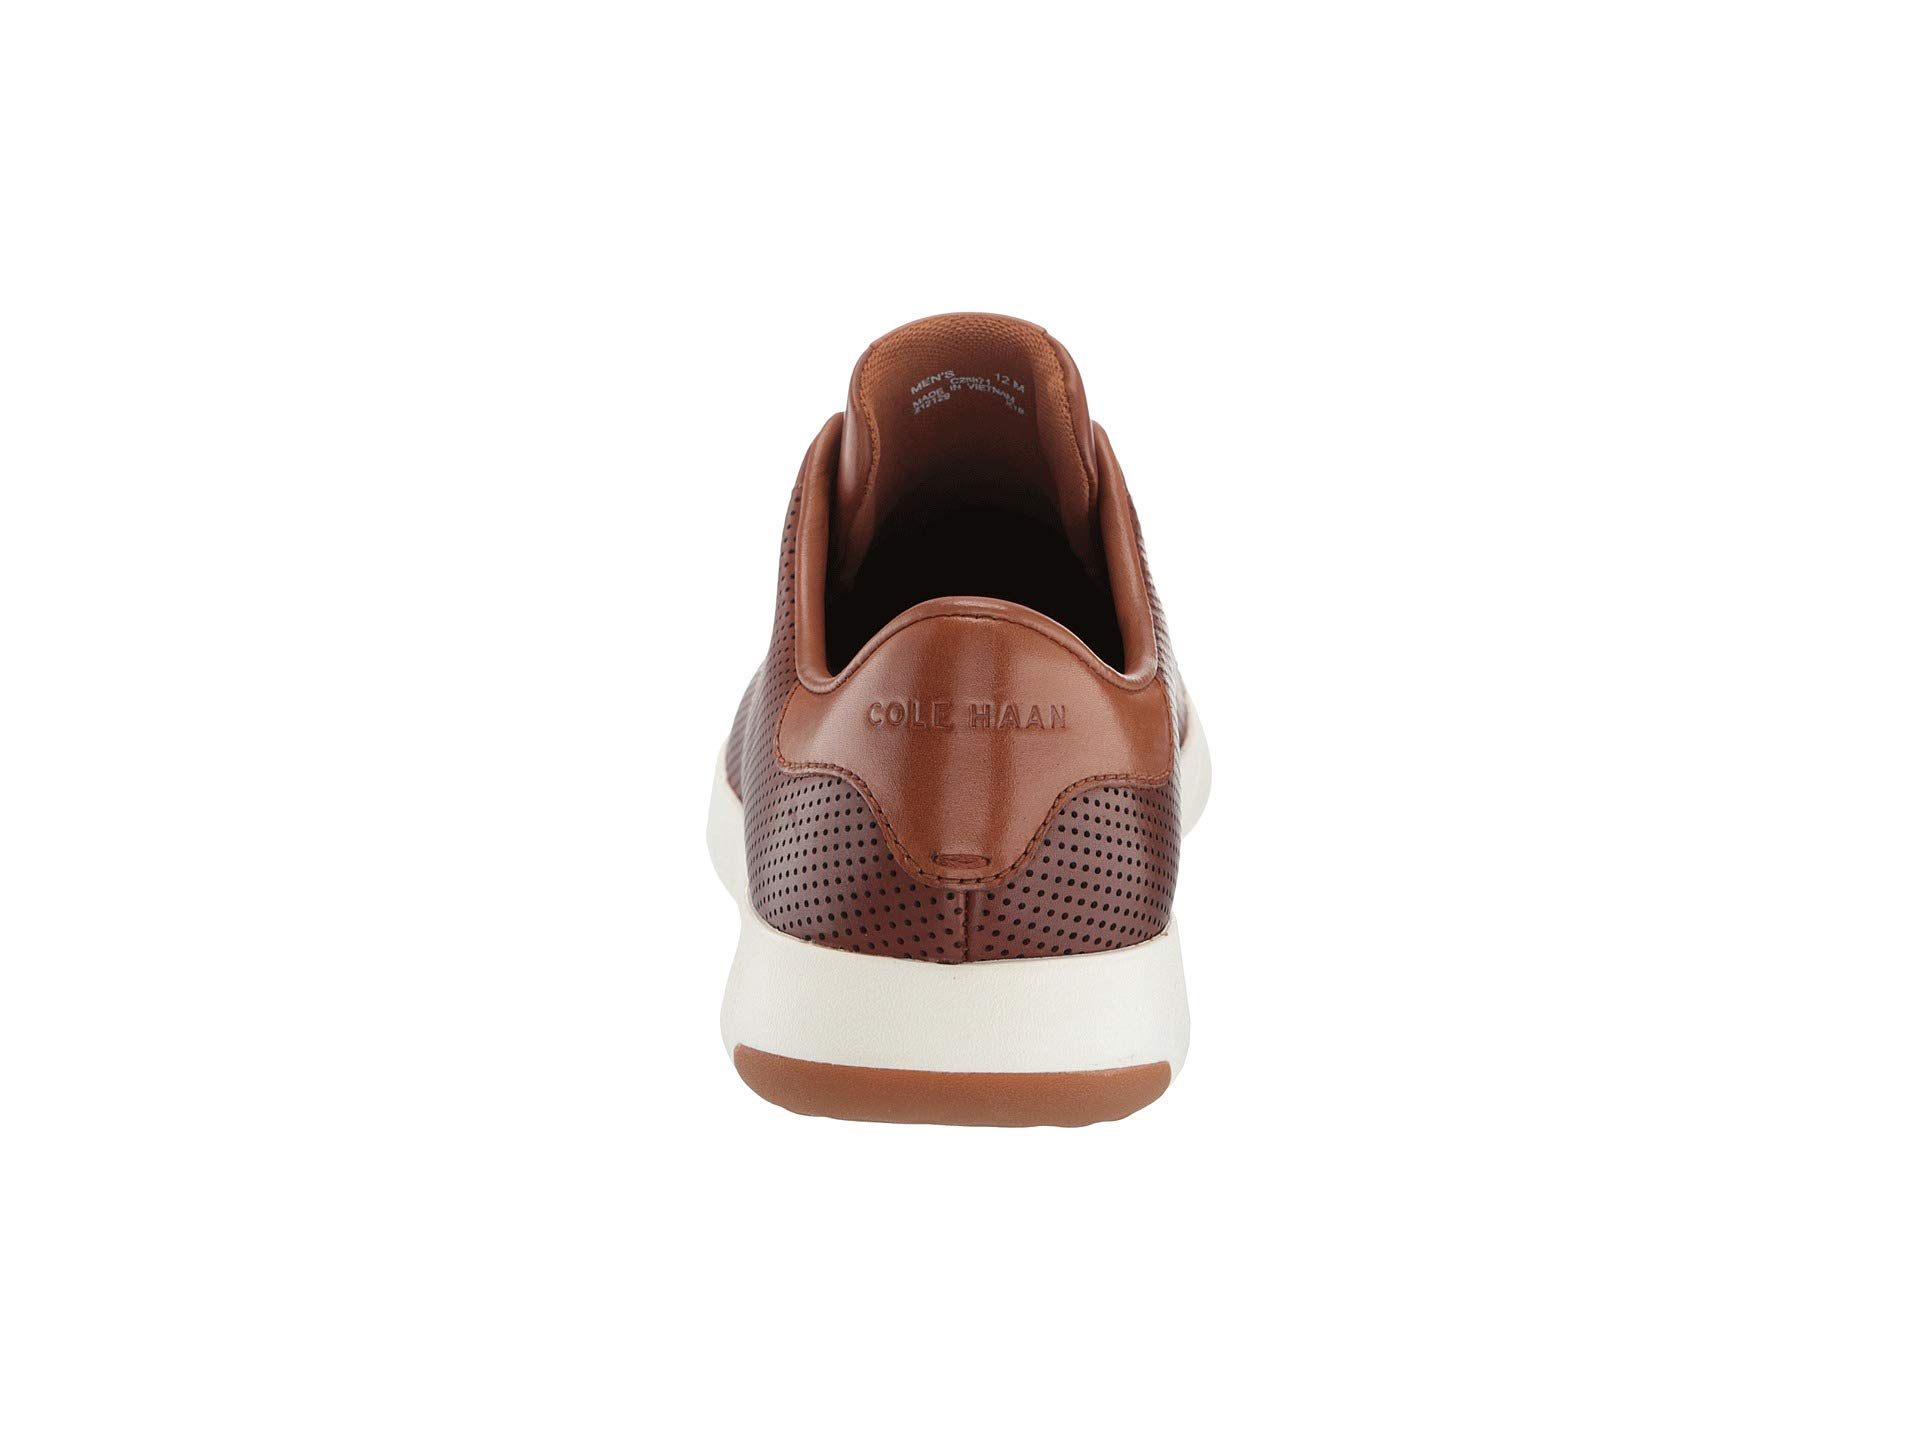 Cole Haan Mens Grandpro Tennis Sneaker 7 Woodbury Handstained Leather by Cole Haan (Image #3)